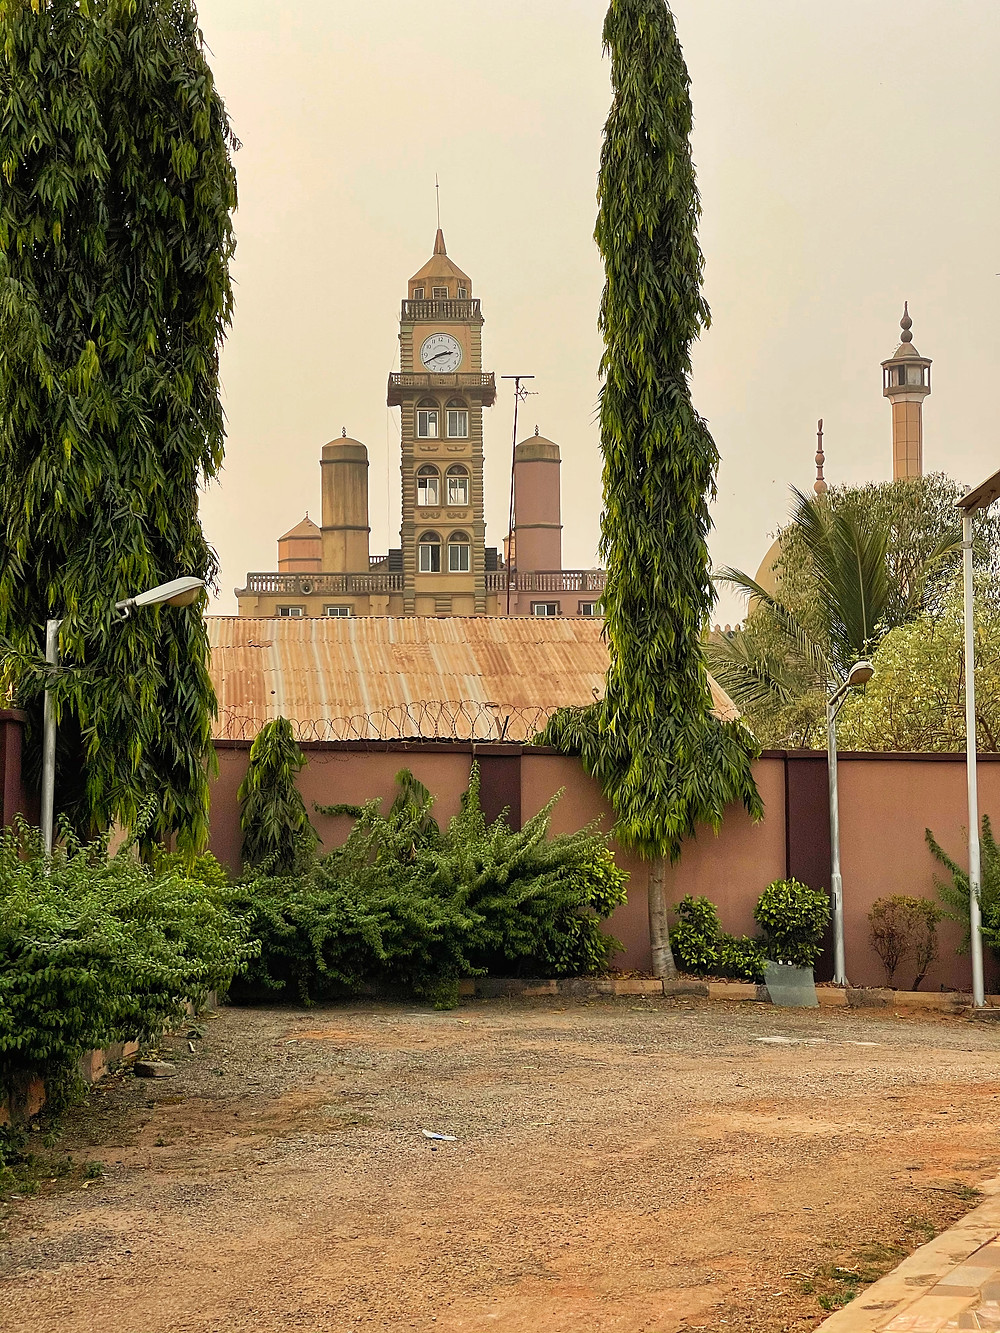 A view of the Offa Central Mosque from the Olofa's palace